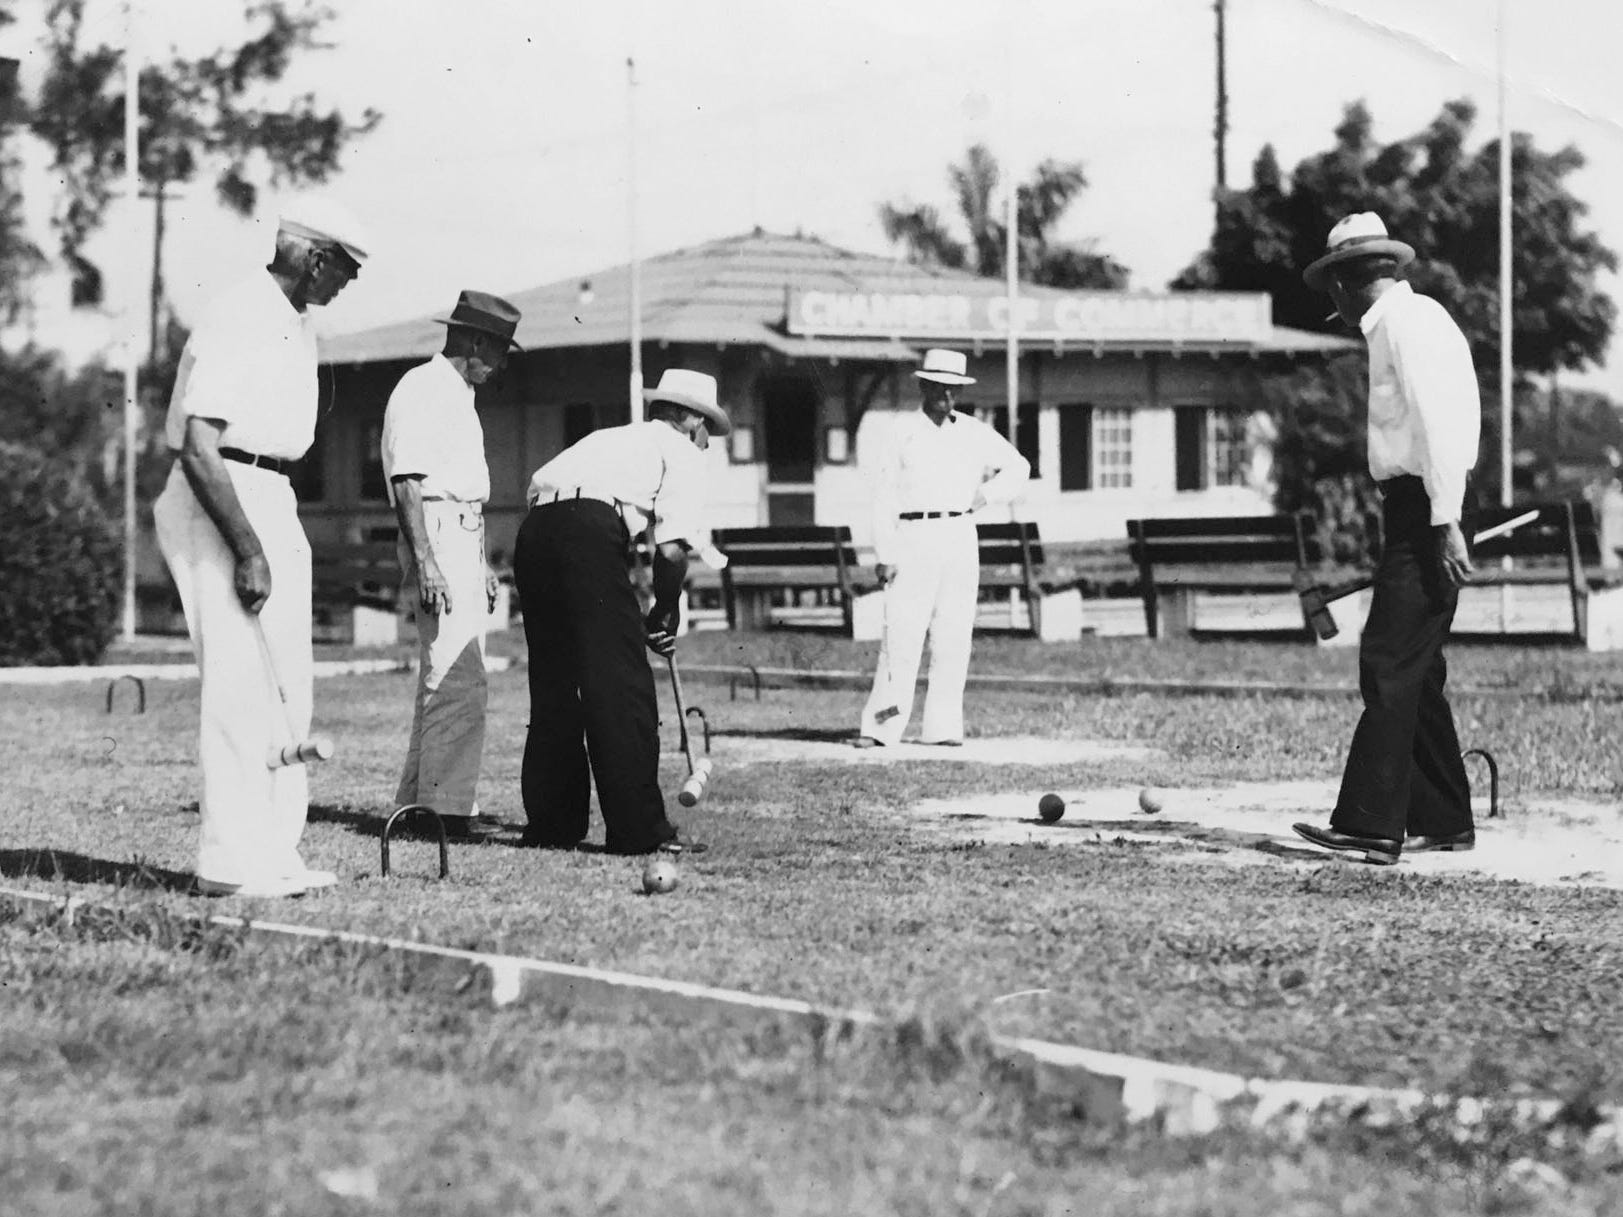 Until the 1960s, Pocahontas Park included a regulation croquet court, where players engaged in cutthroat variations of the more genteel lawn croquet. Their rules allowed competitors to bank shots off the concrete wall. This picture is believed to have been taken before 1953, before the old Chamber of Commerce building in the background was moved.